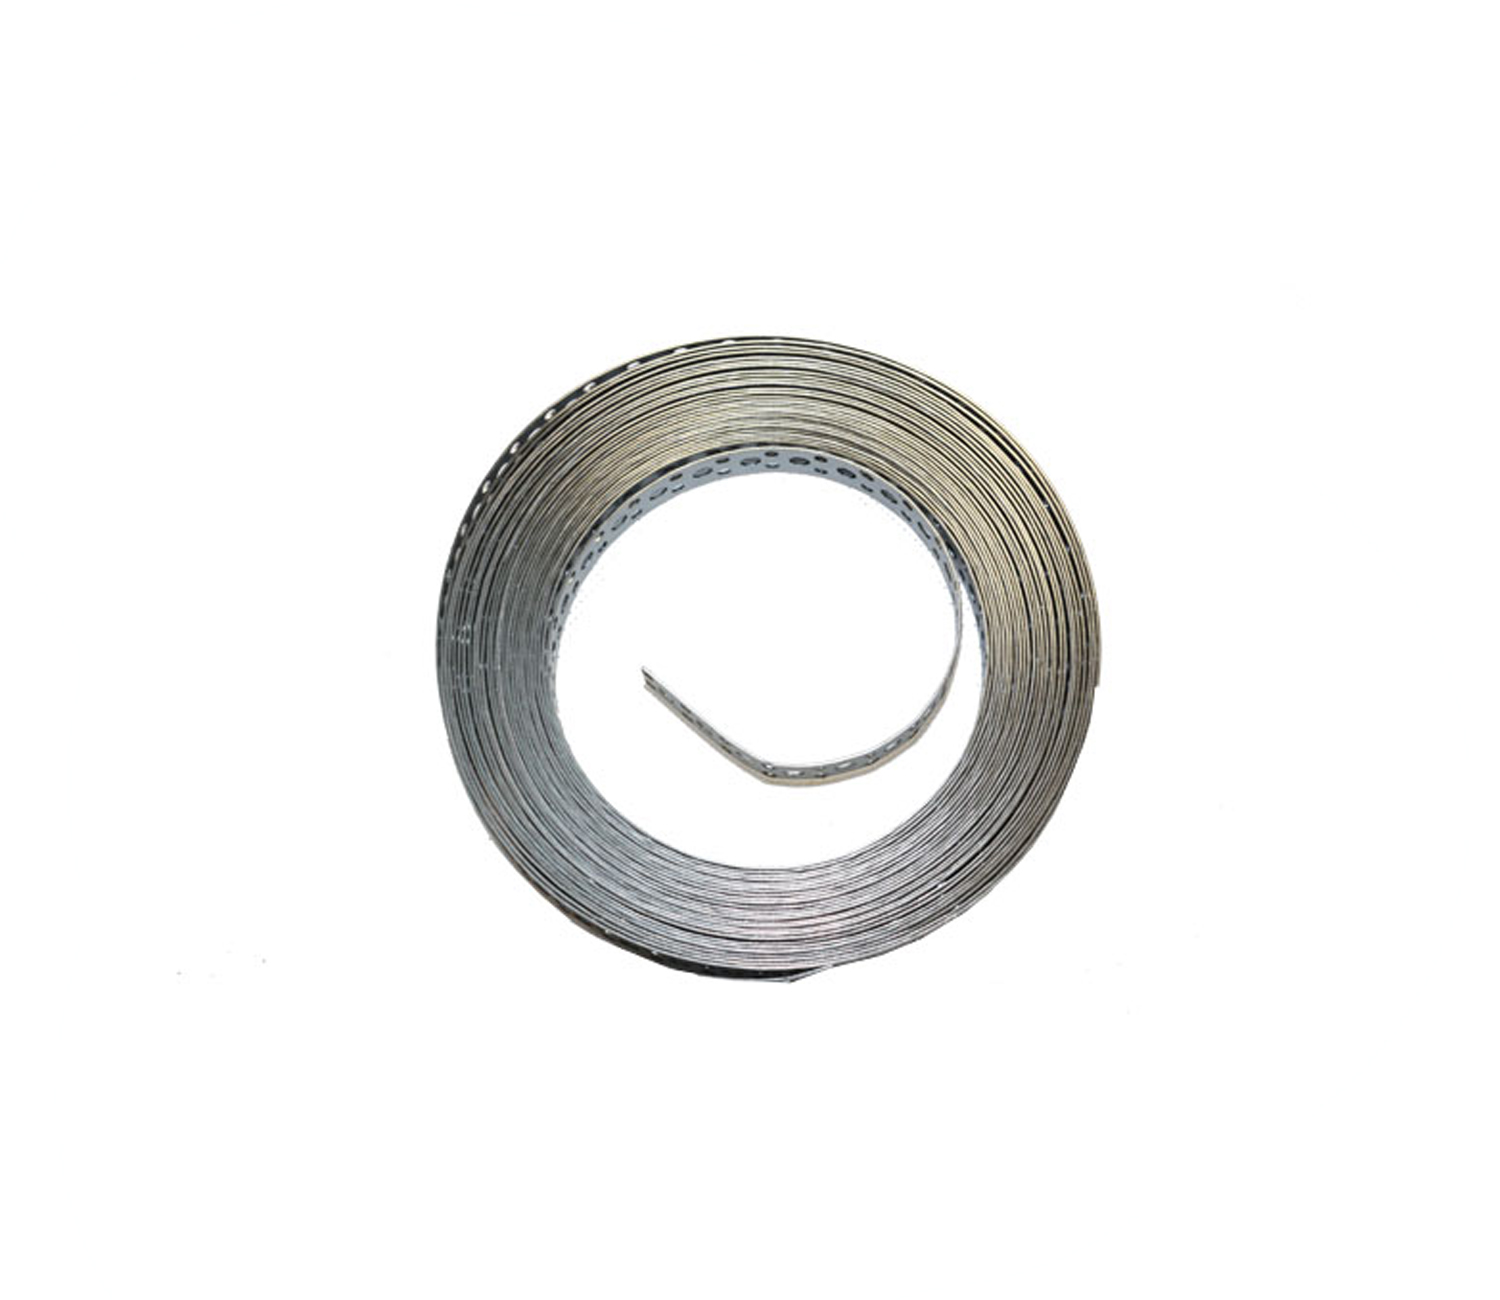 Galvanised Fixing Band 13 mm×10m